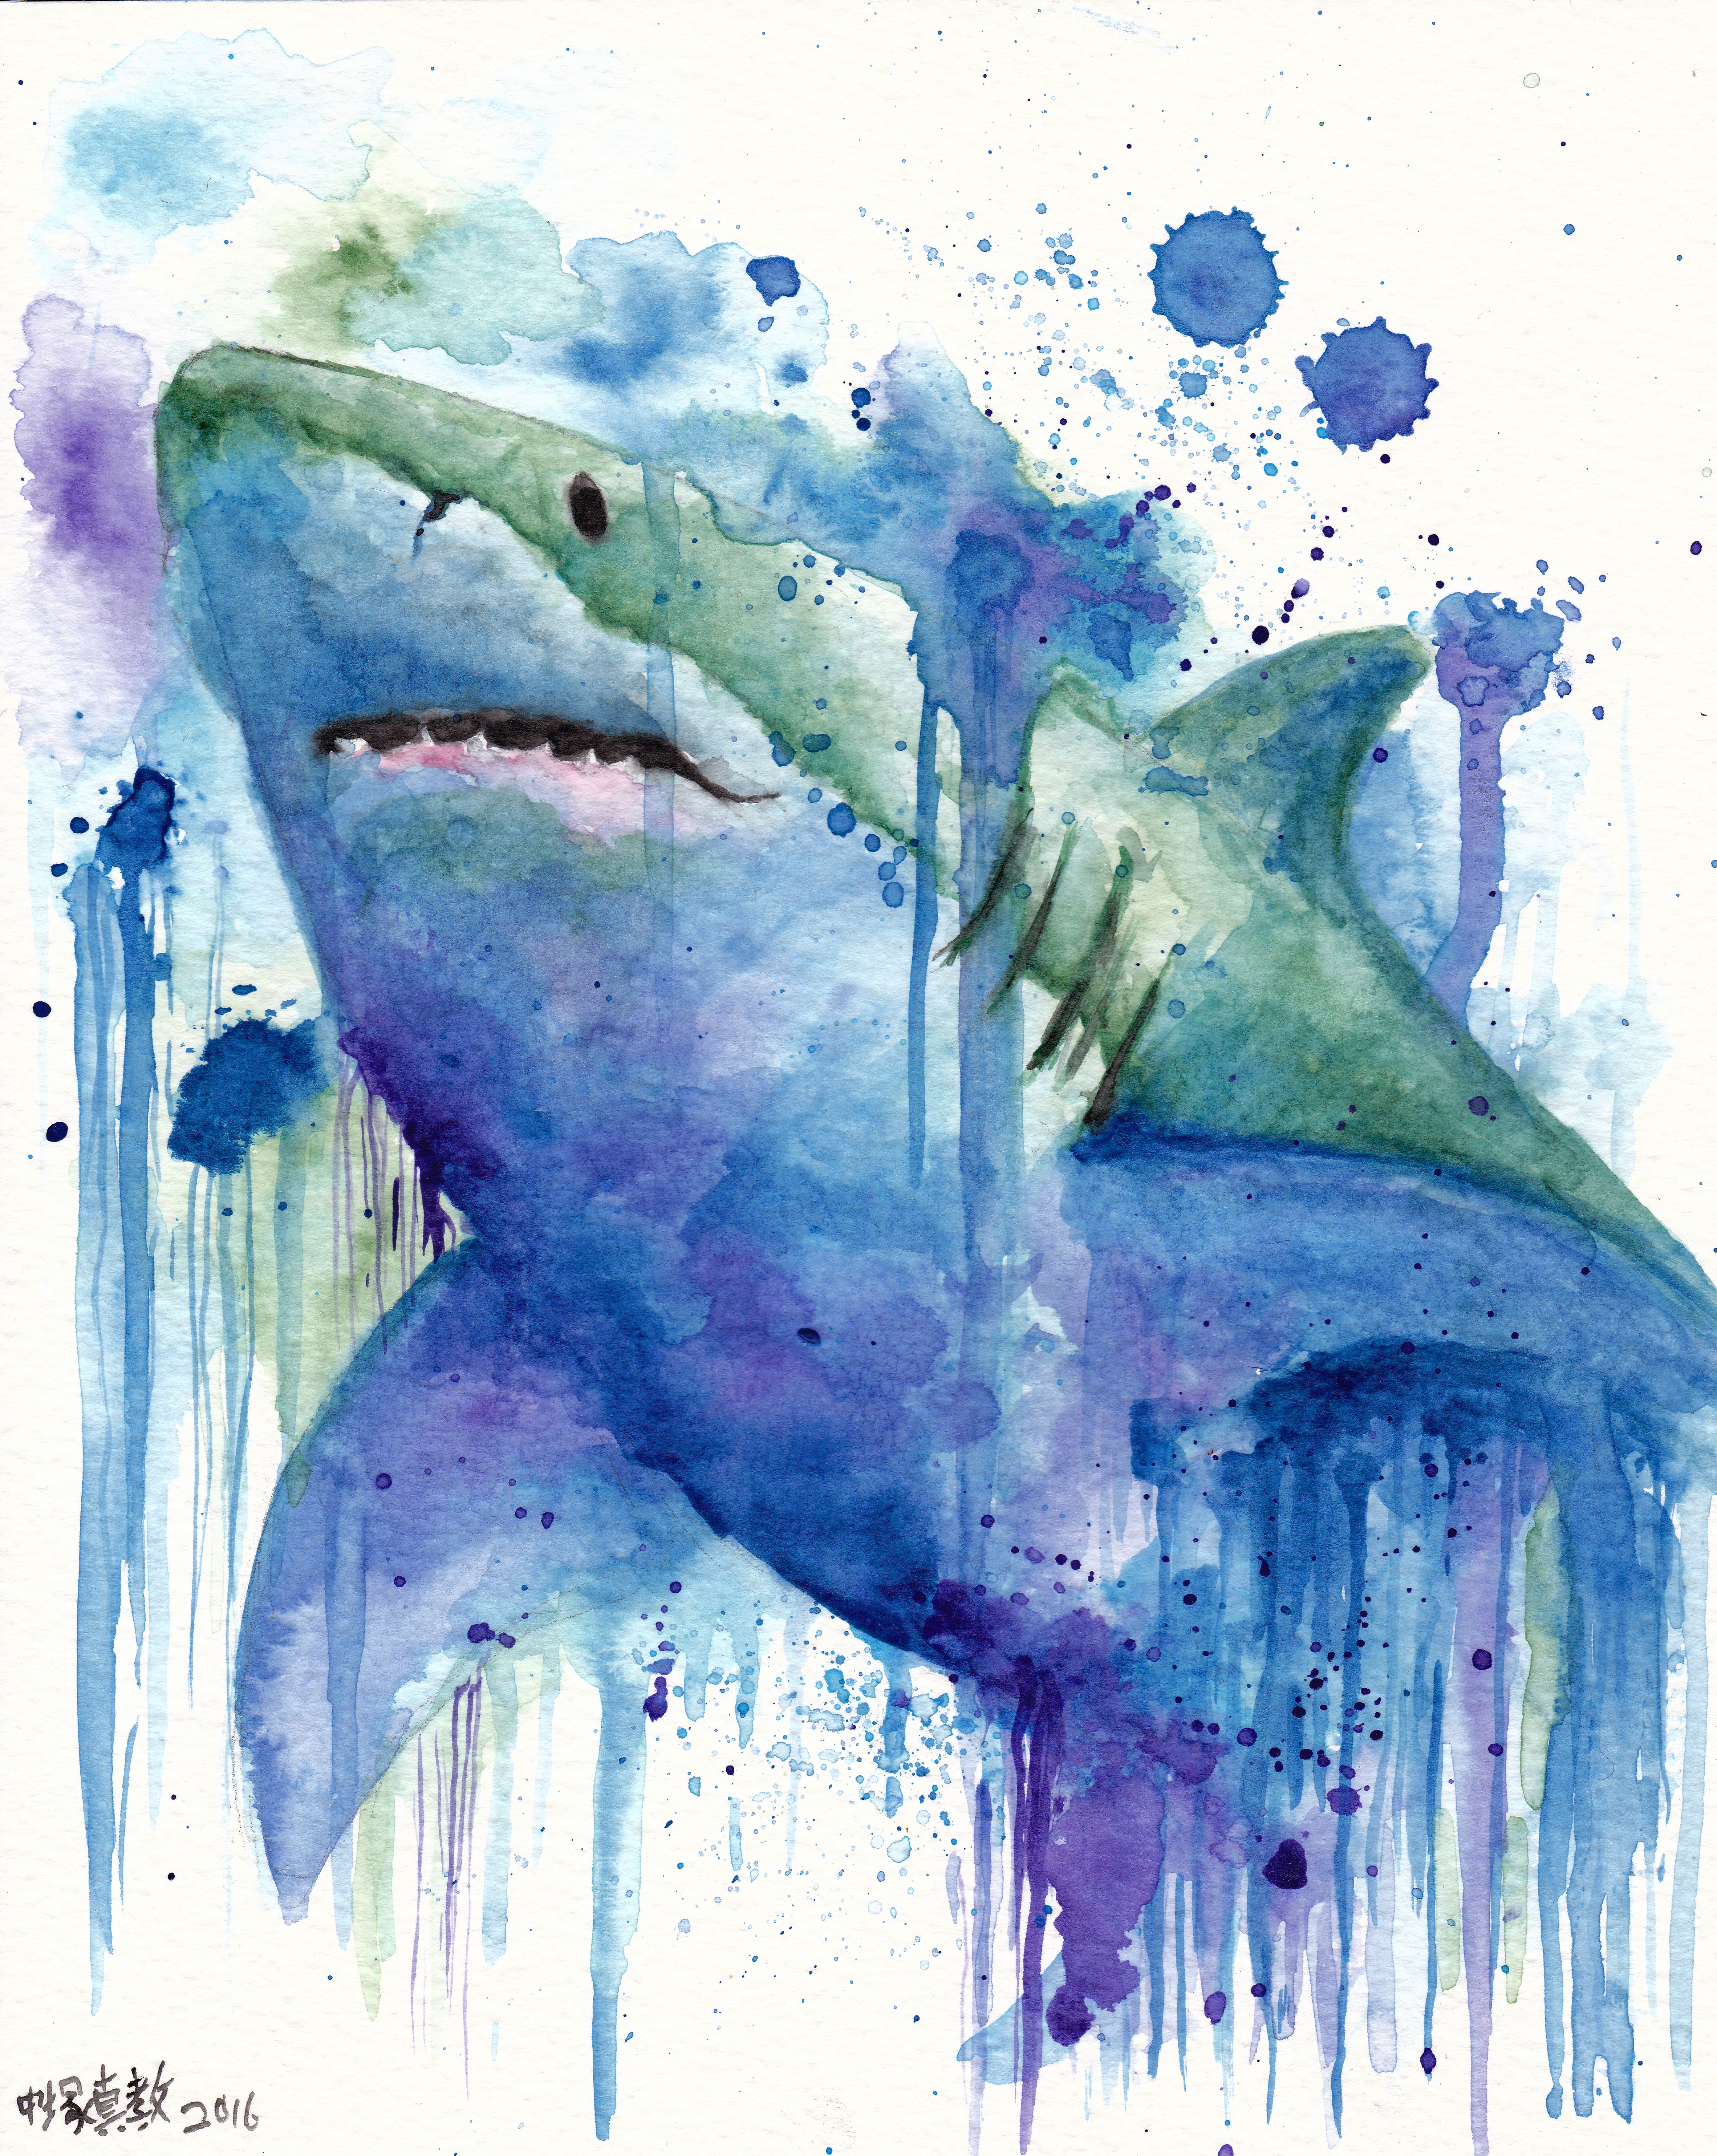 watercolour shark